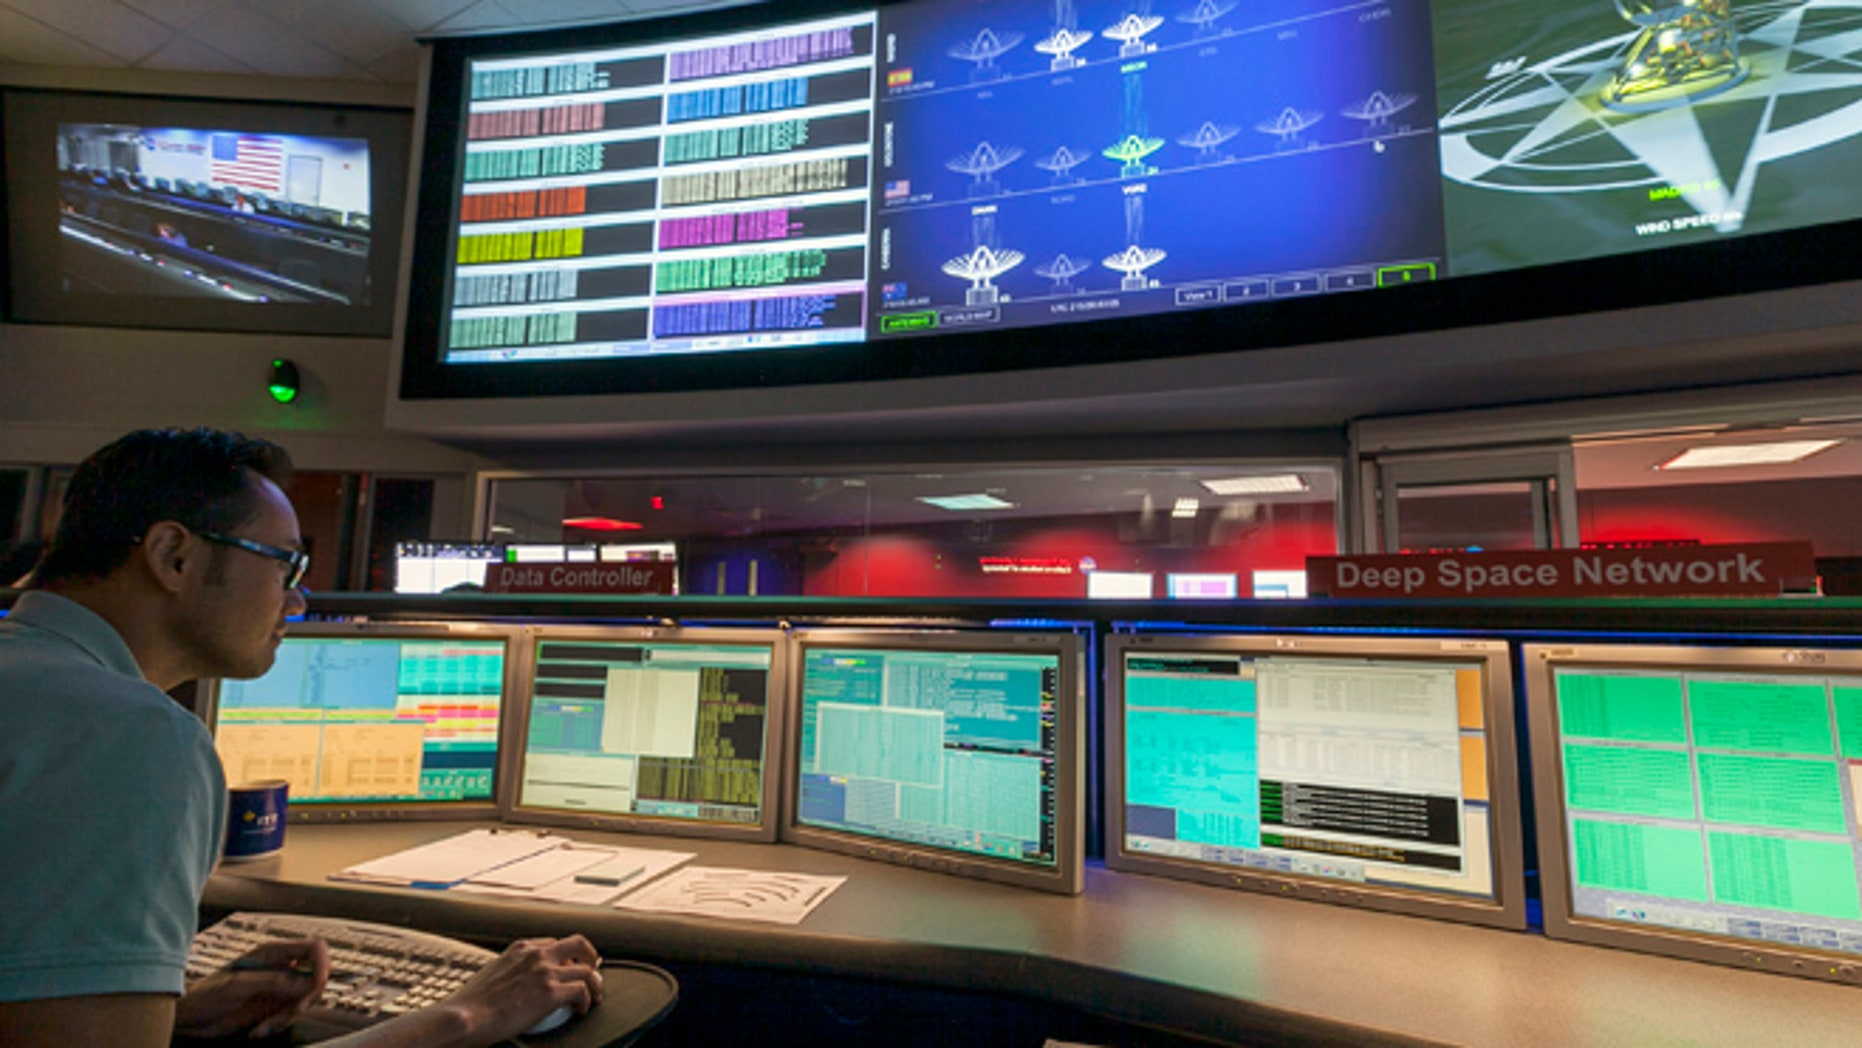 Aug. 2, 2012: This file photo shows Nick Lam, data controller, monitoring the Mars rover Curiosity from the Deep Space Network's control room at NASA's Jet Propulsion Laboratory in Pasadena, Calif.